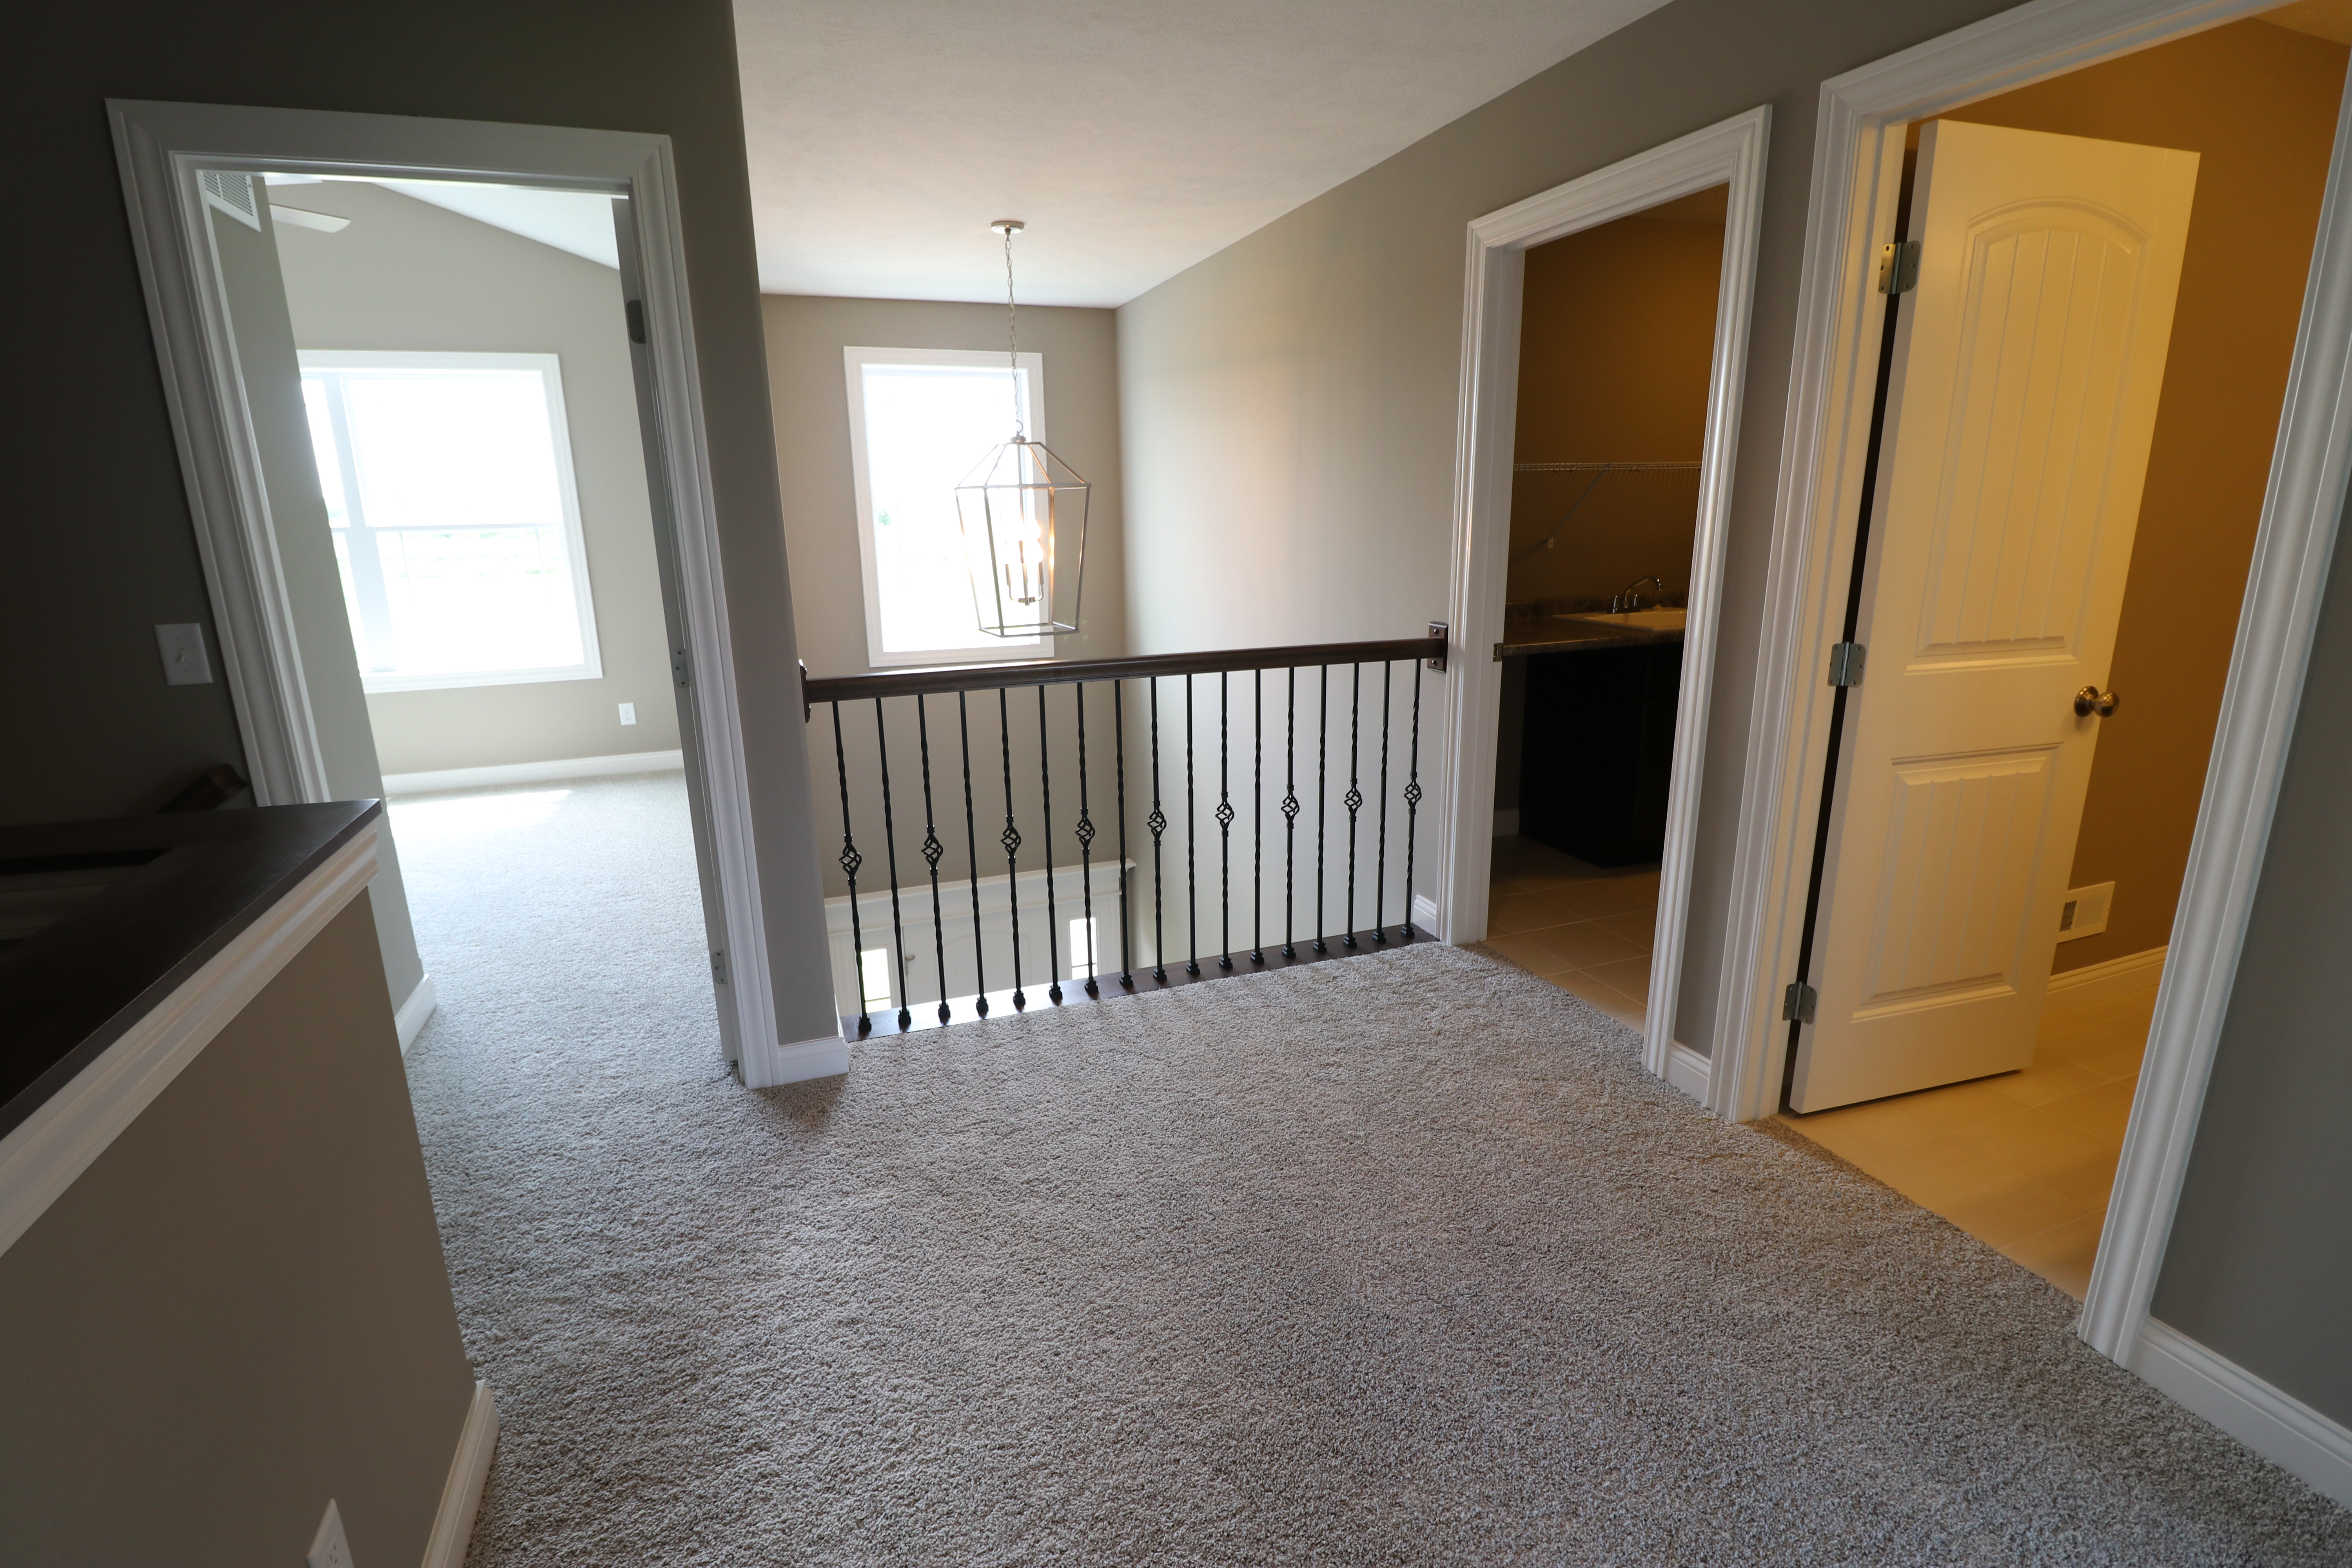 House for sale in the Dunlap peoria area bedroom floor part 2